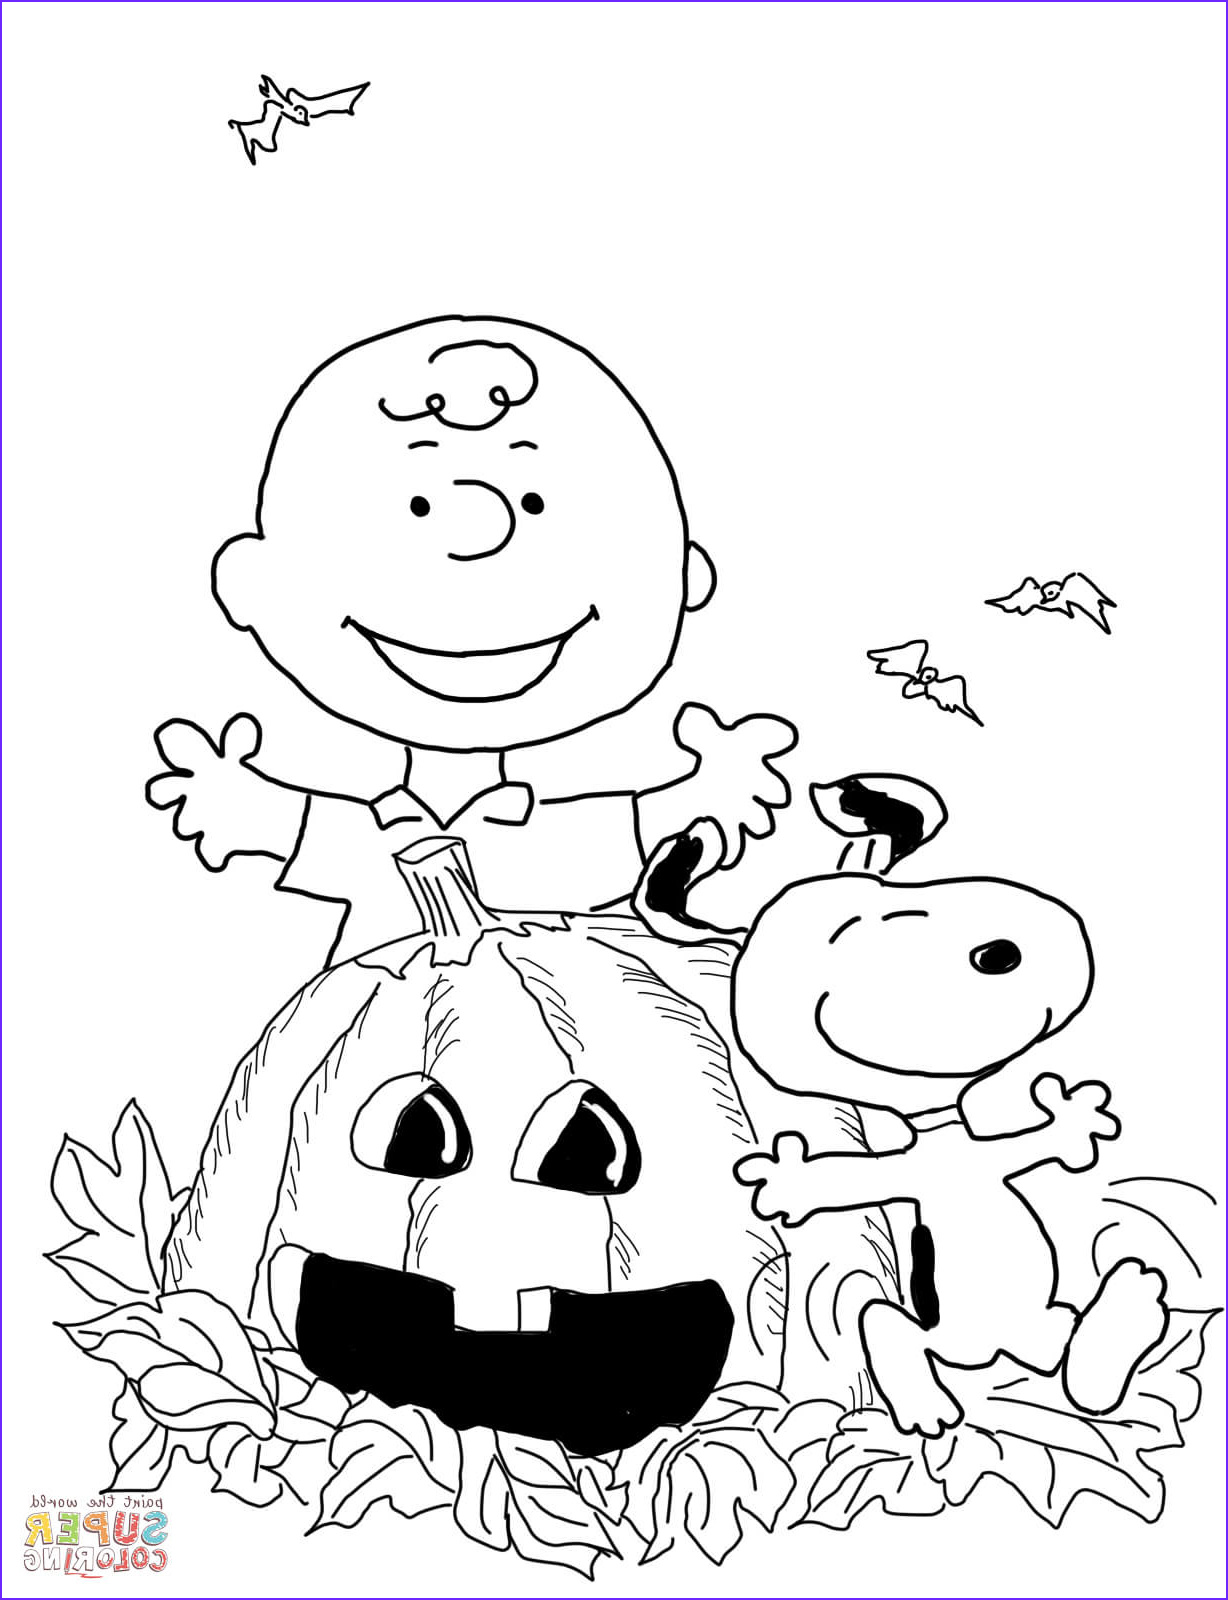 Charlie Brown Coloring Pages Inspirational Images Charlie Brown Halloween Coloring Page